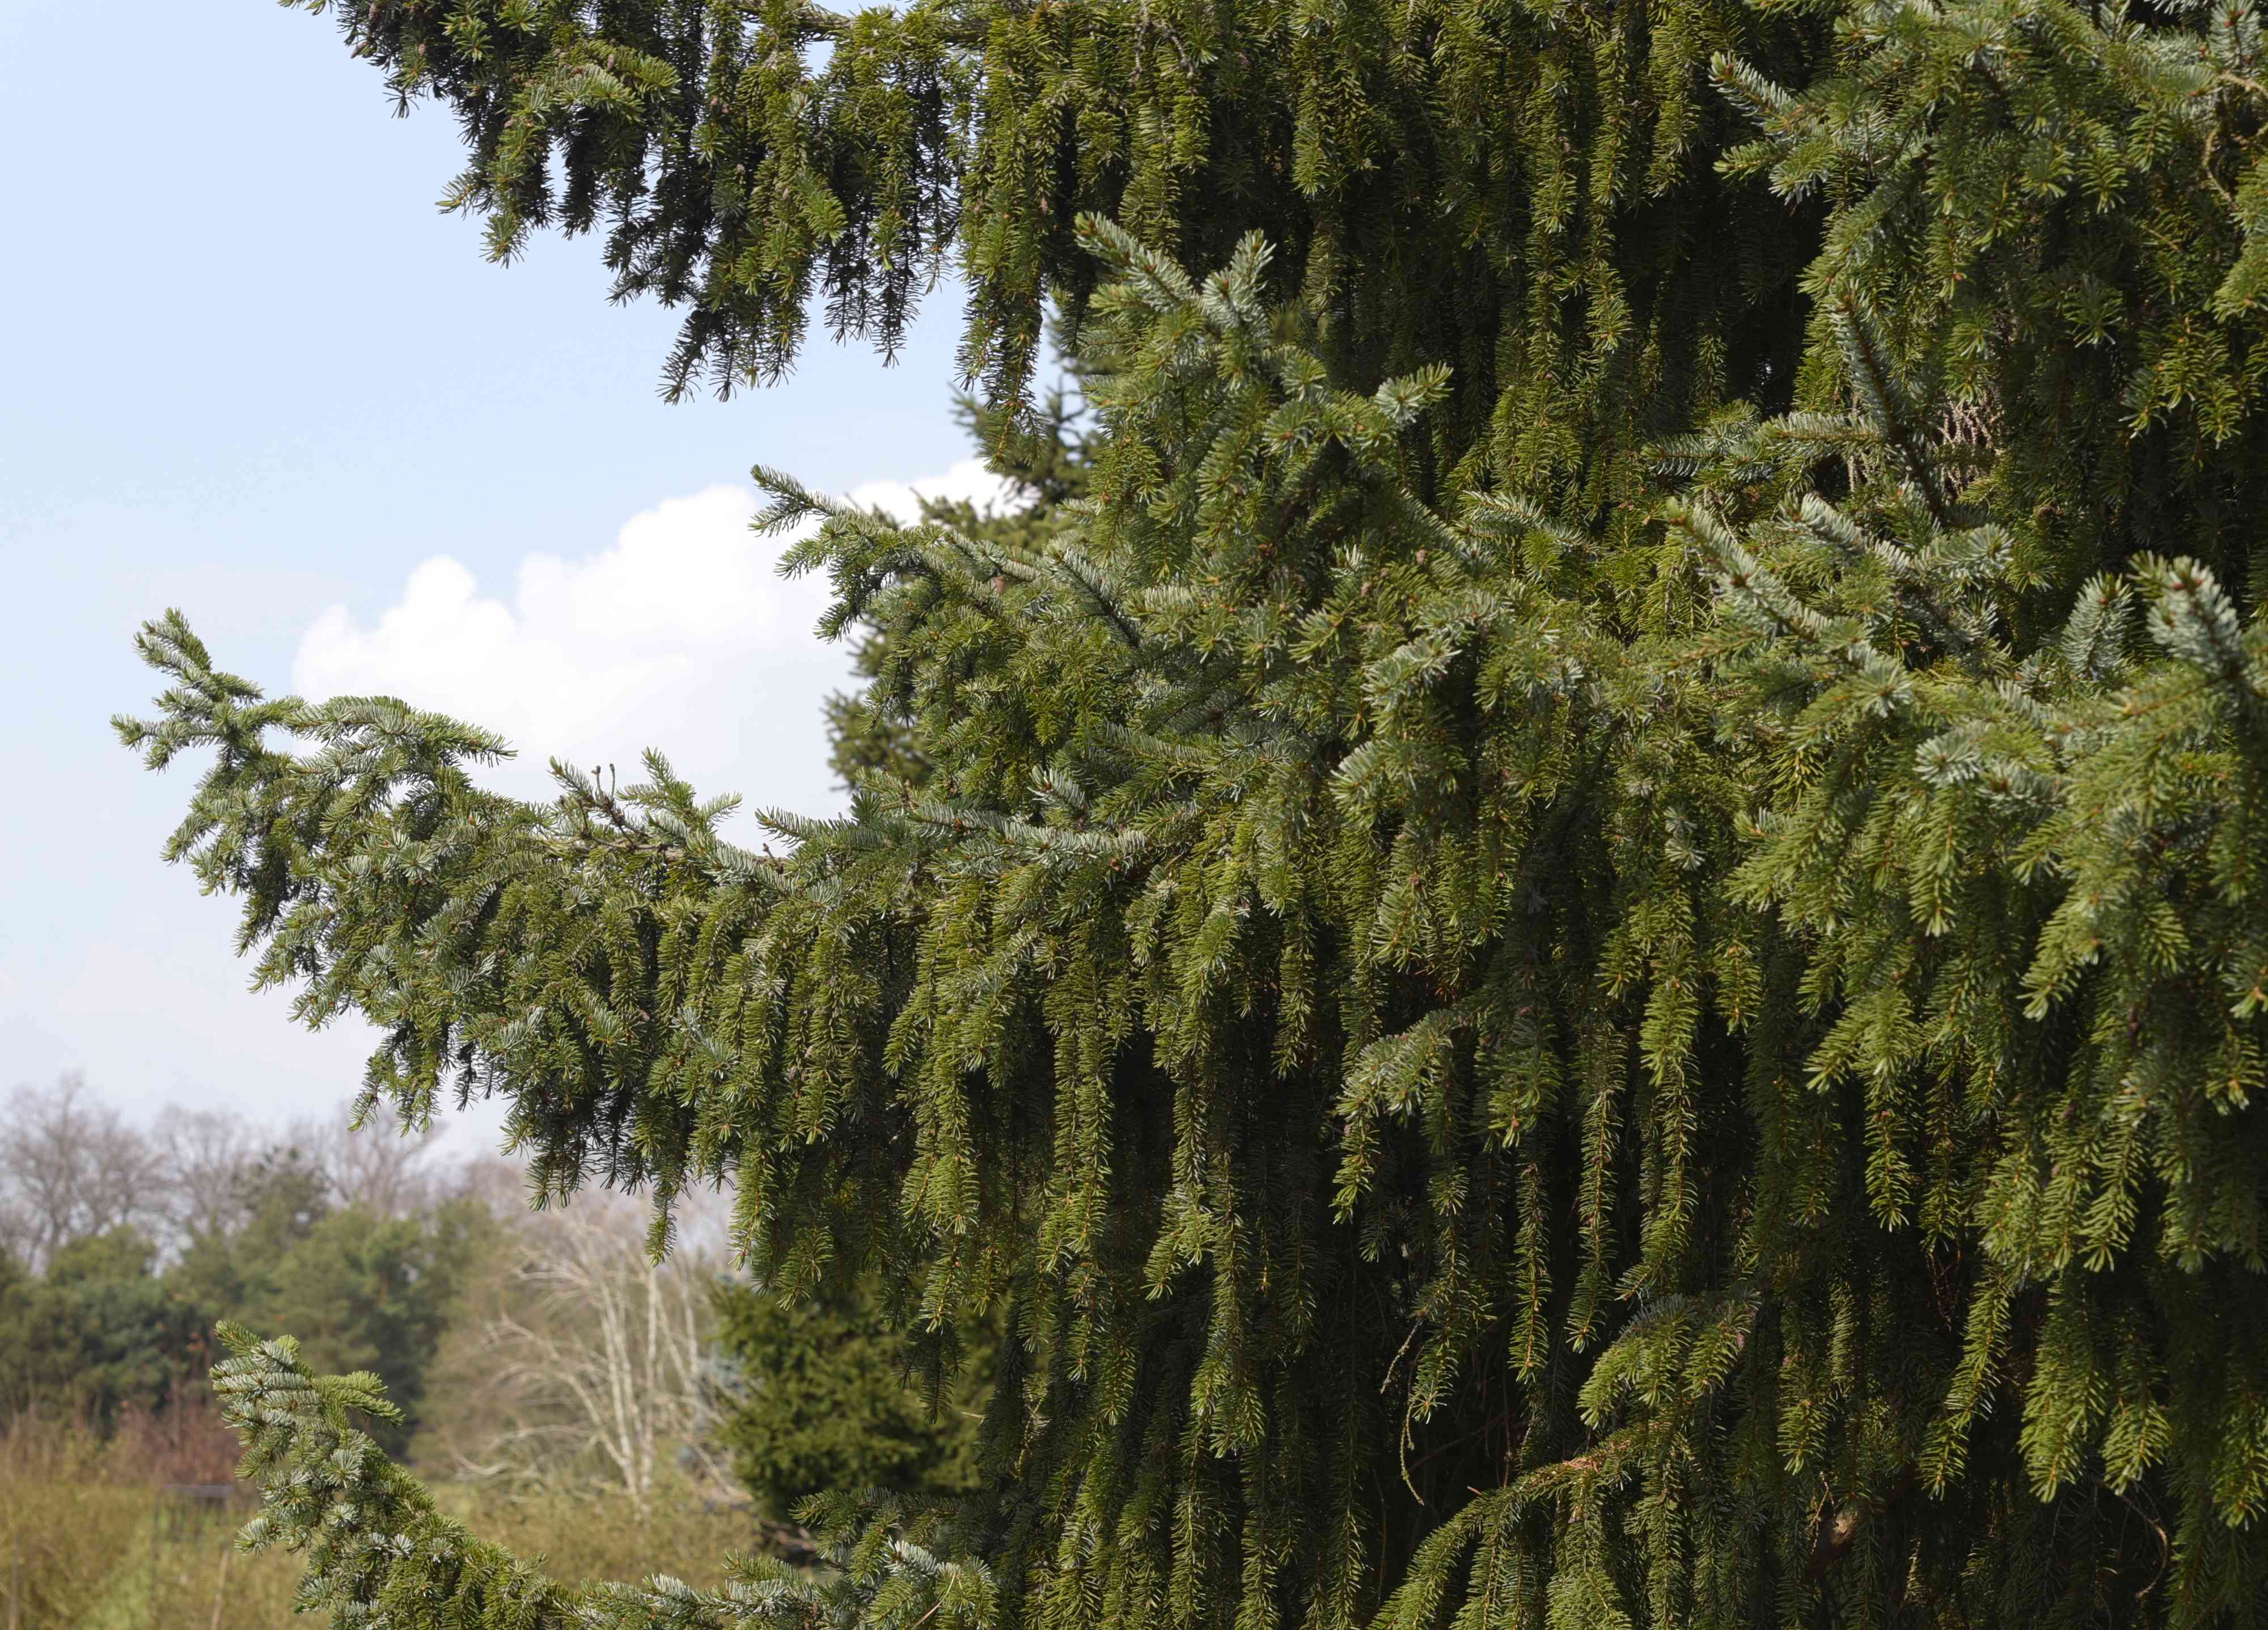 Serbian spruce tree with weeping branches and long needles against blue sky